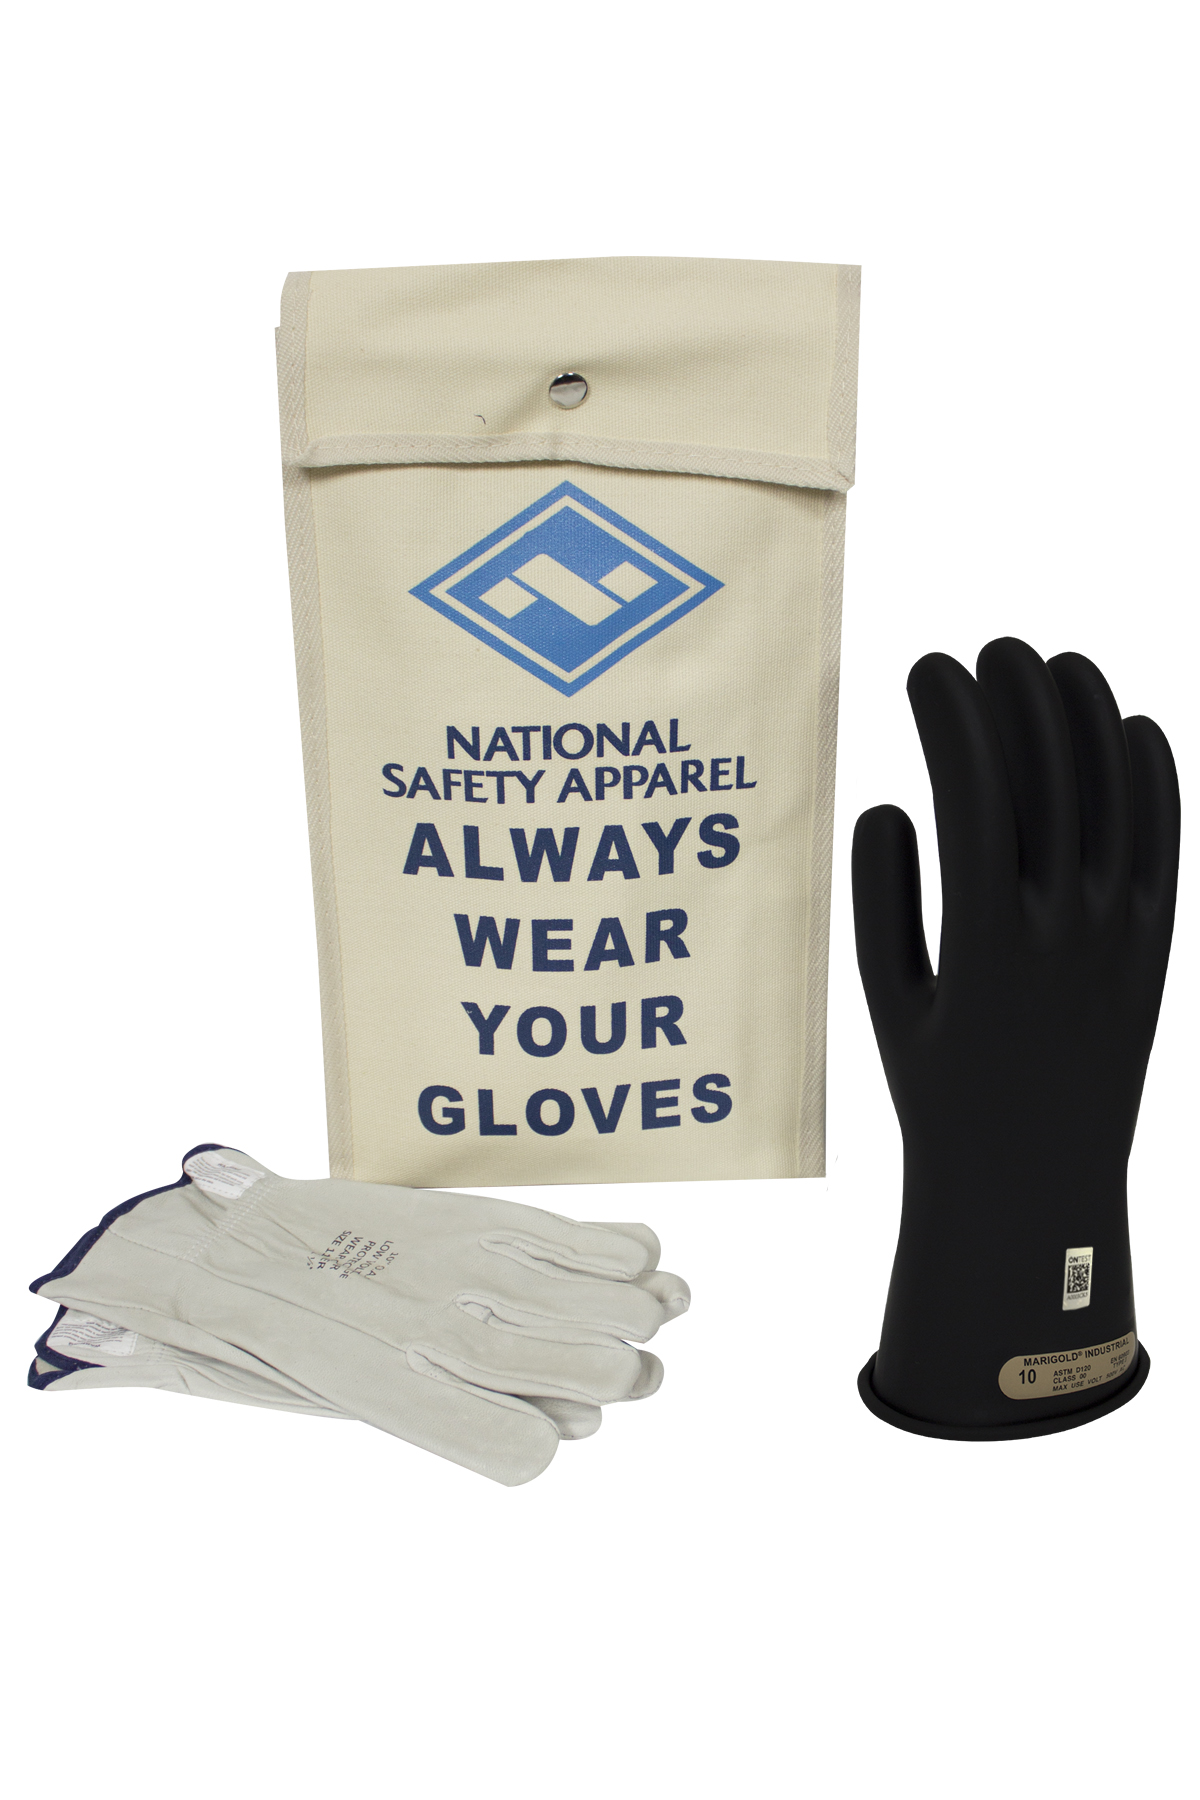 Class 00 Rubber Voltage Glove Kit - Black - 8 - Electrical